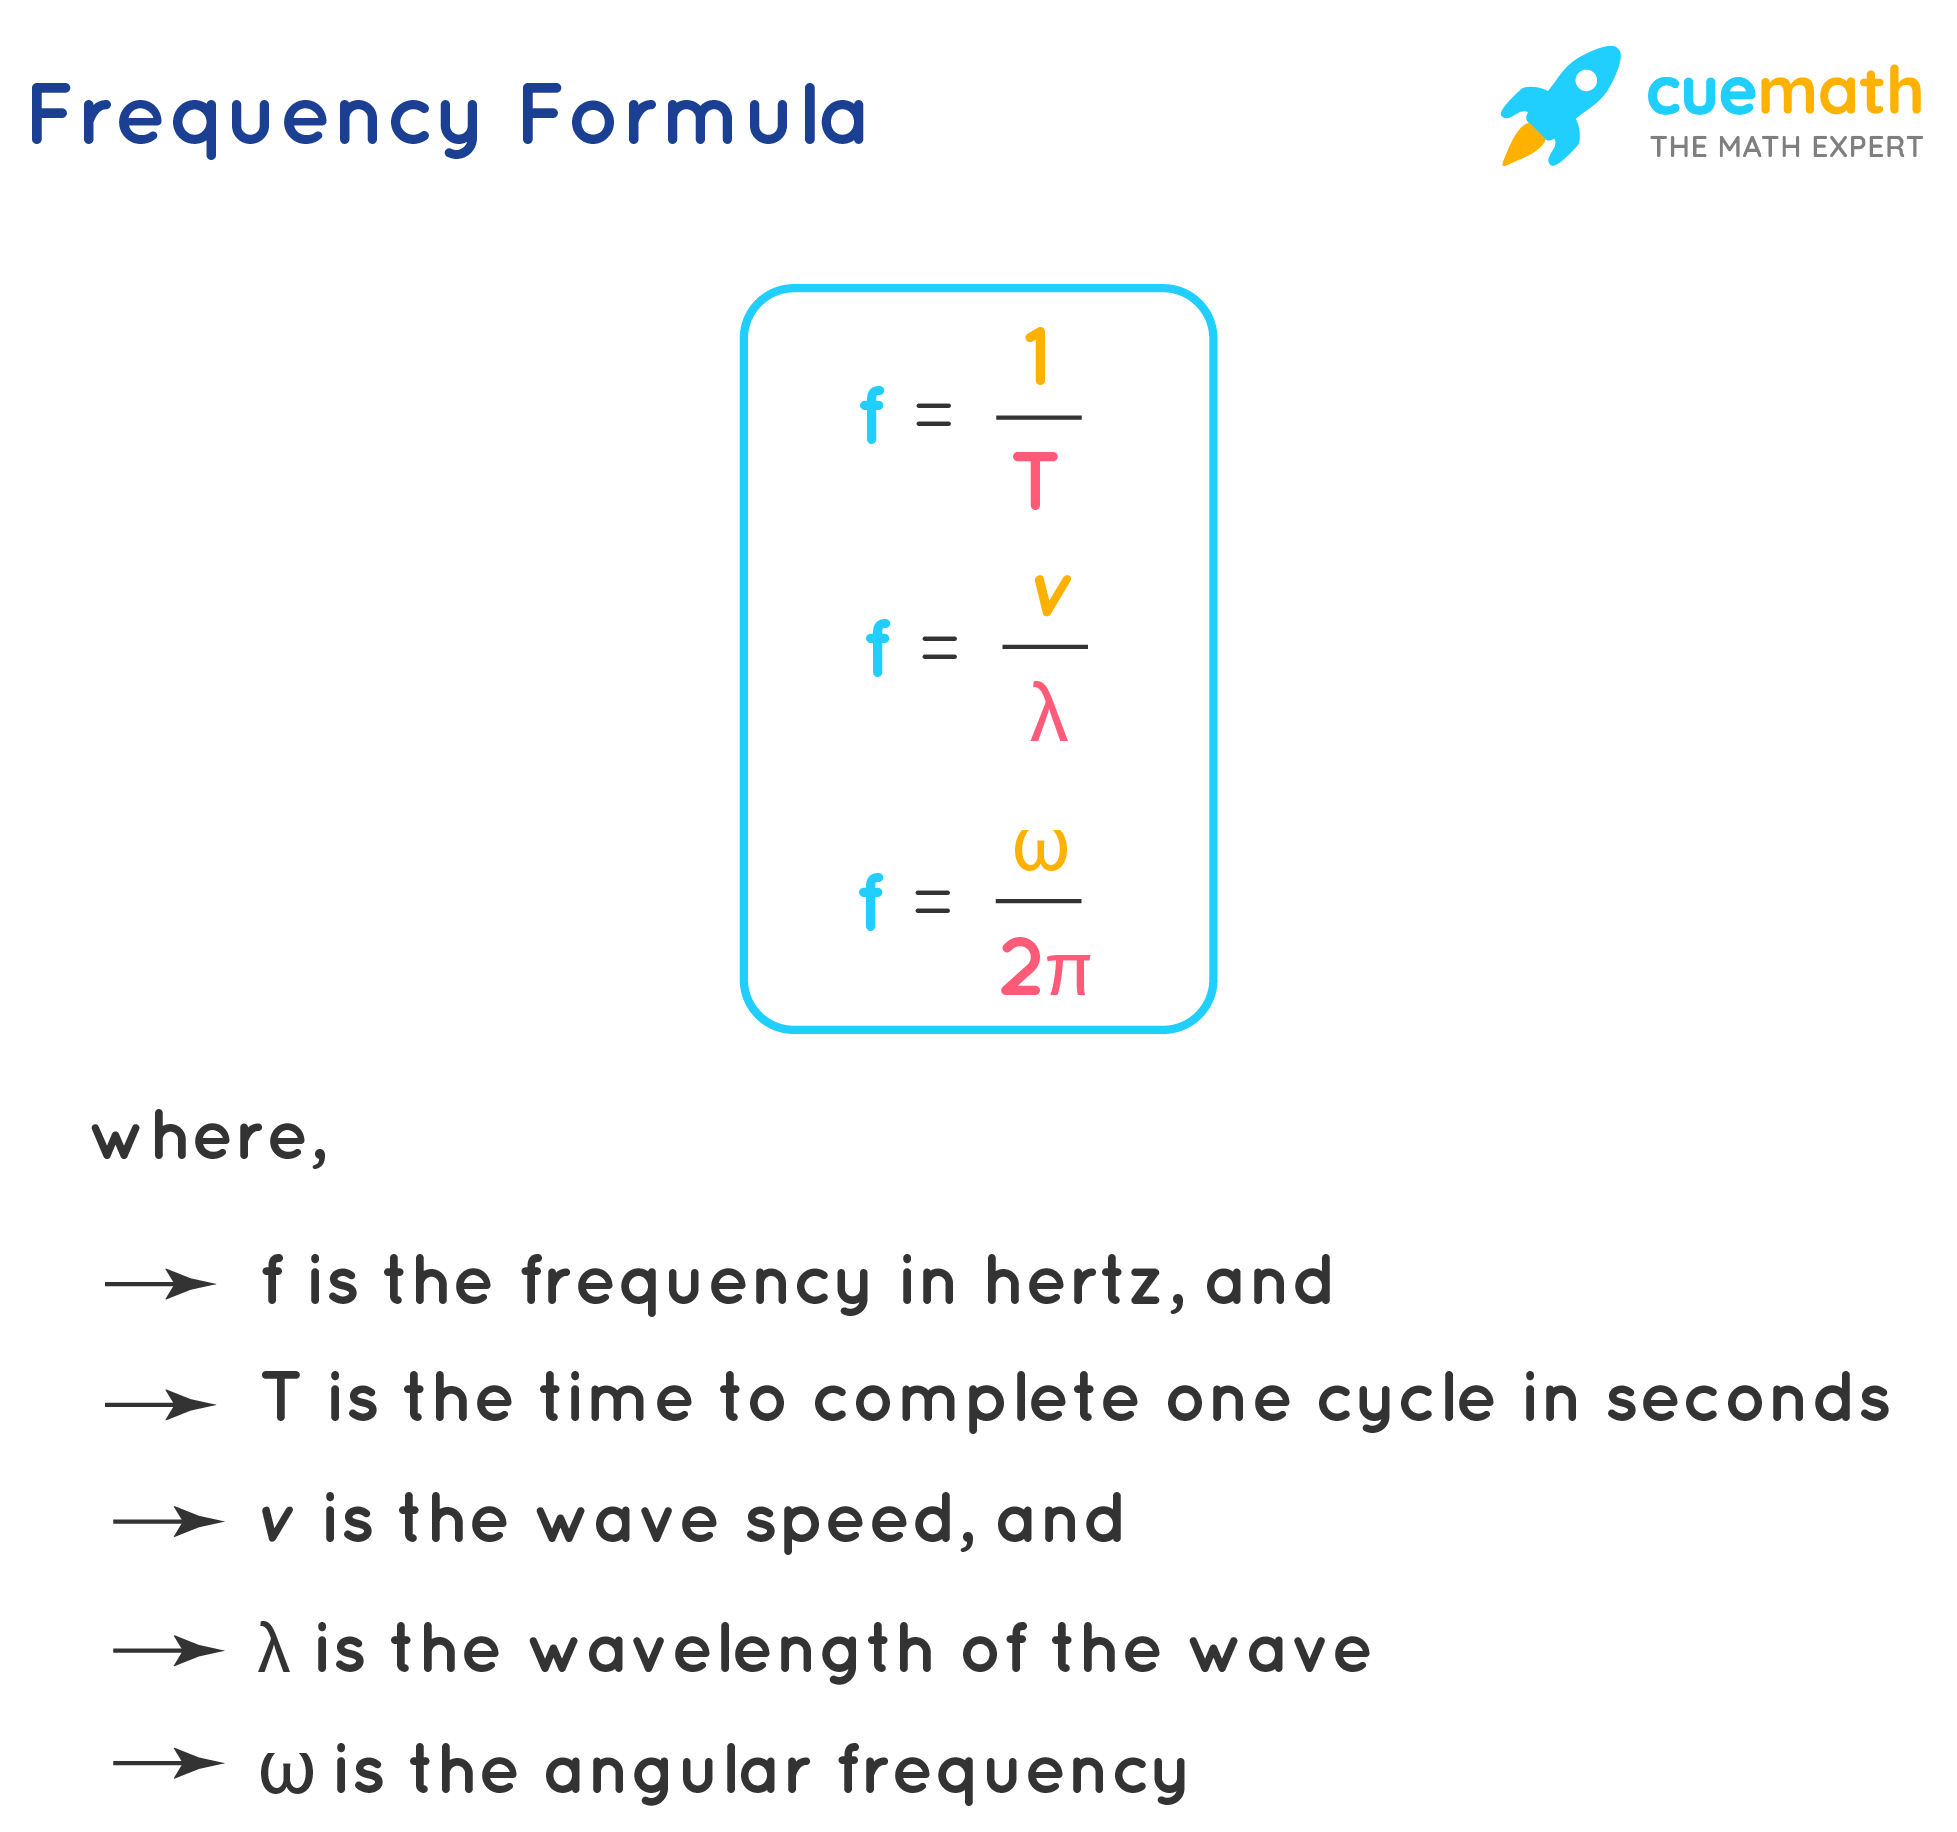 Frequency Formula